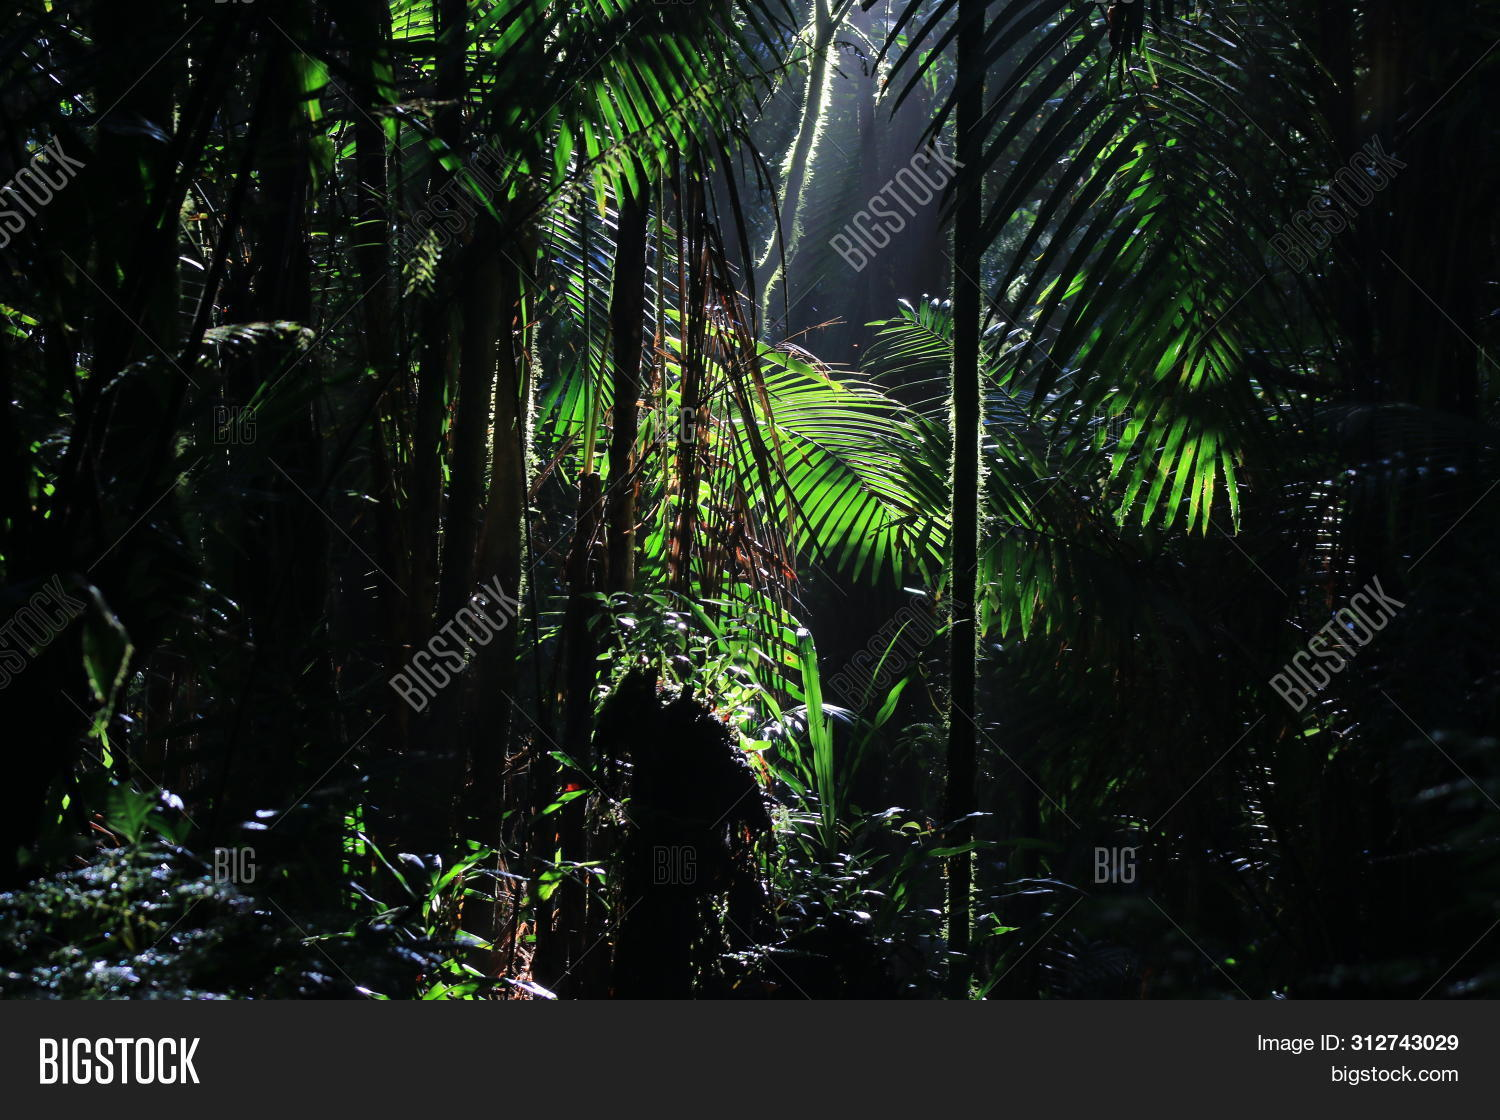 Wallpaper Tropical Image Photo Free Trial Bigstock